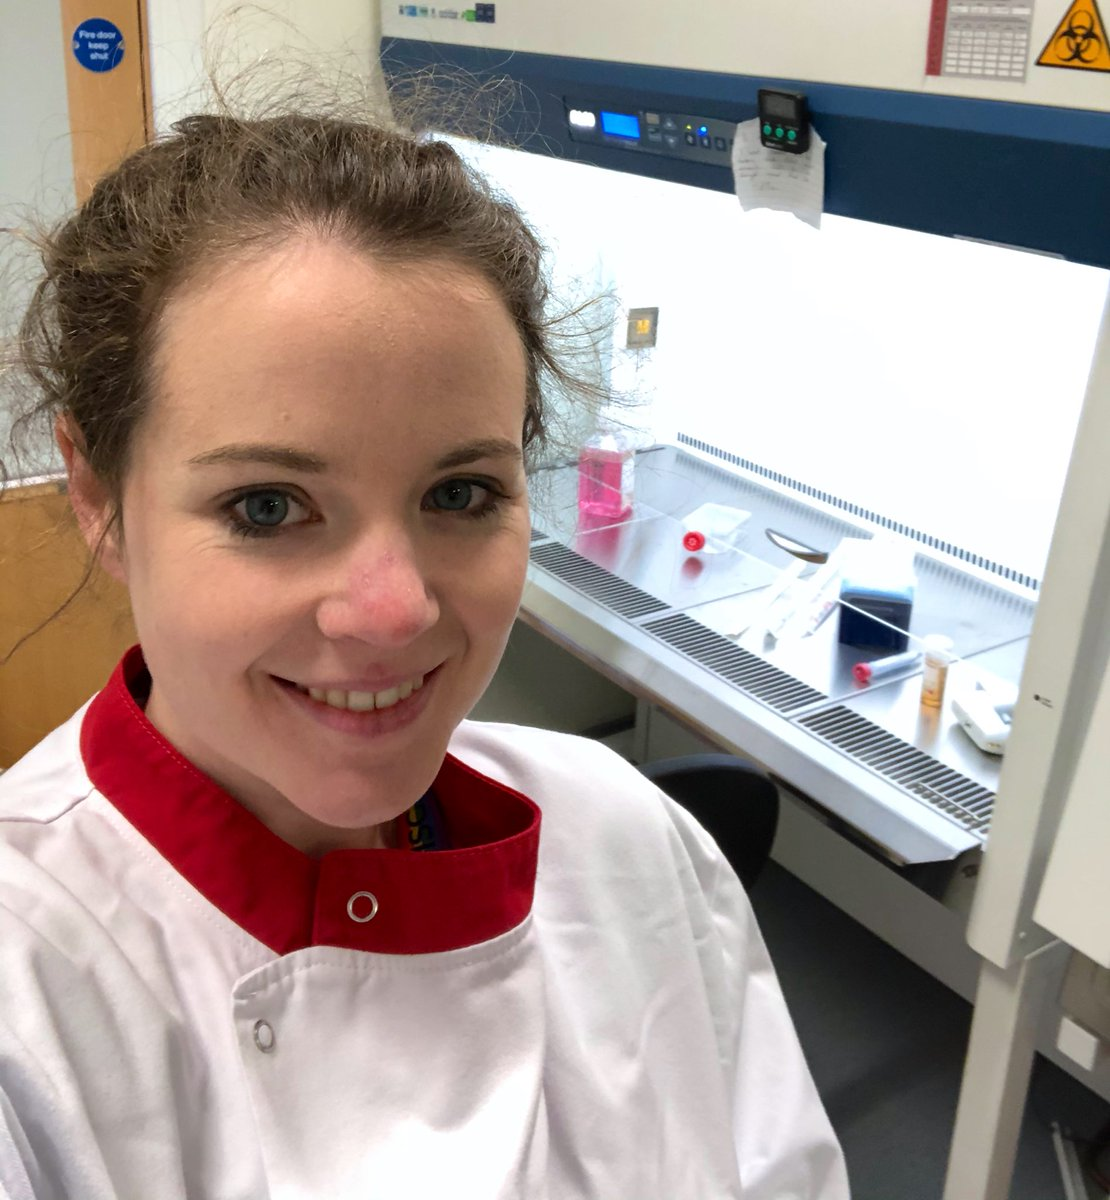 Your cells must be glad to see you Sarah! Welcome back to the lab :)